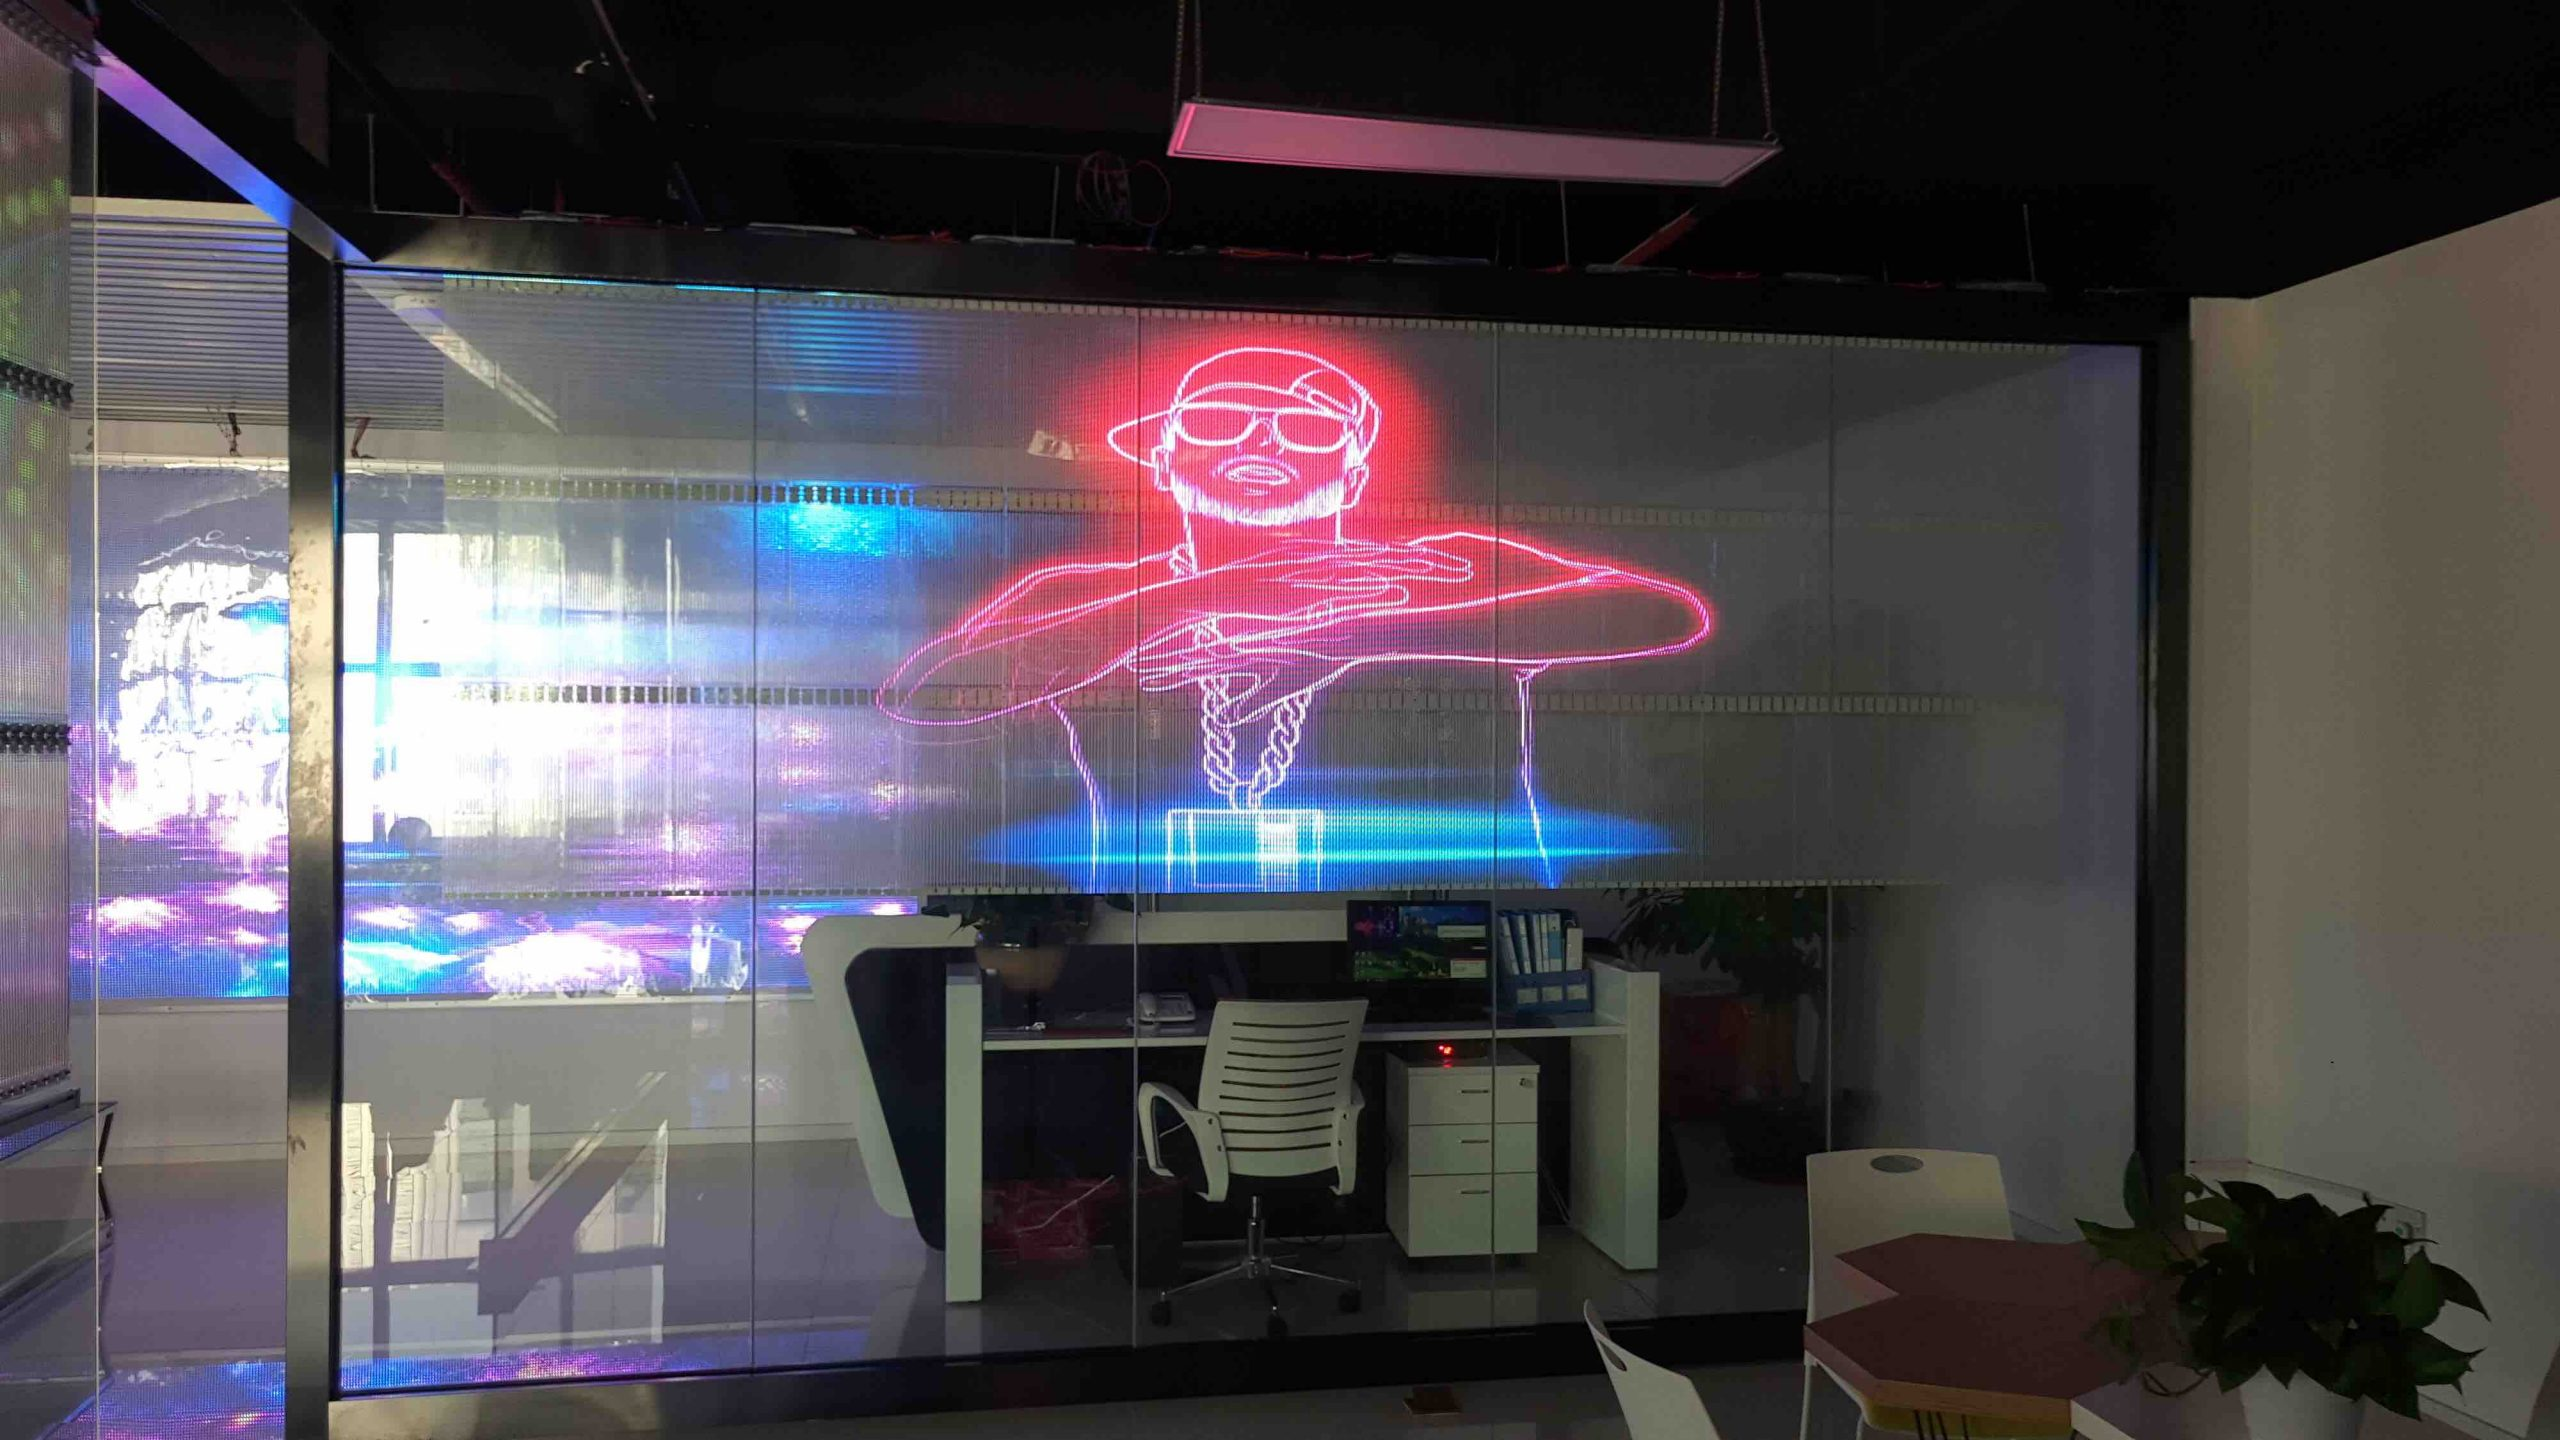 Adhesif transparent LED facade window building wall indoor to stick on windows glass screen (1)